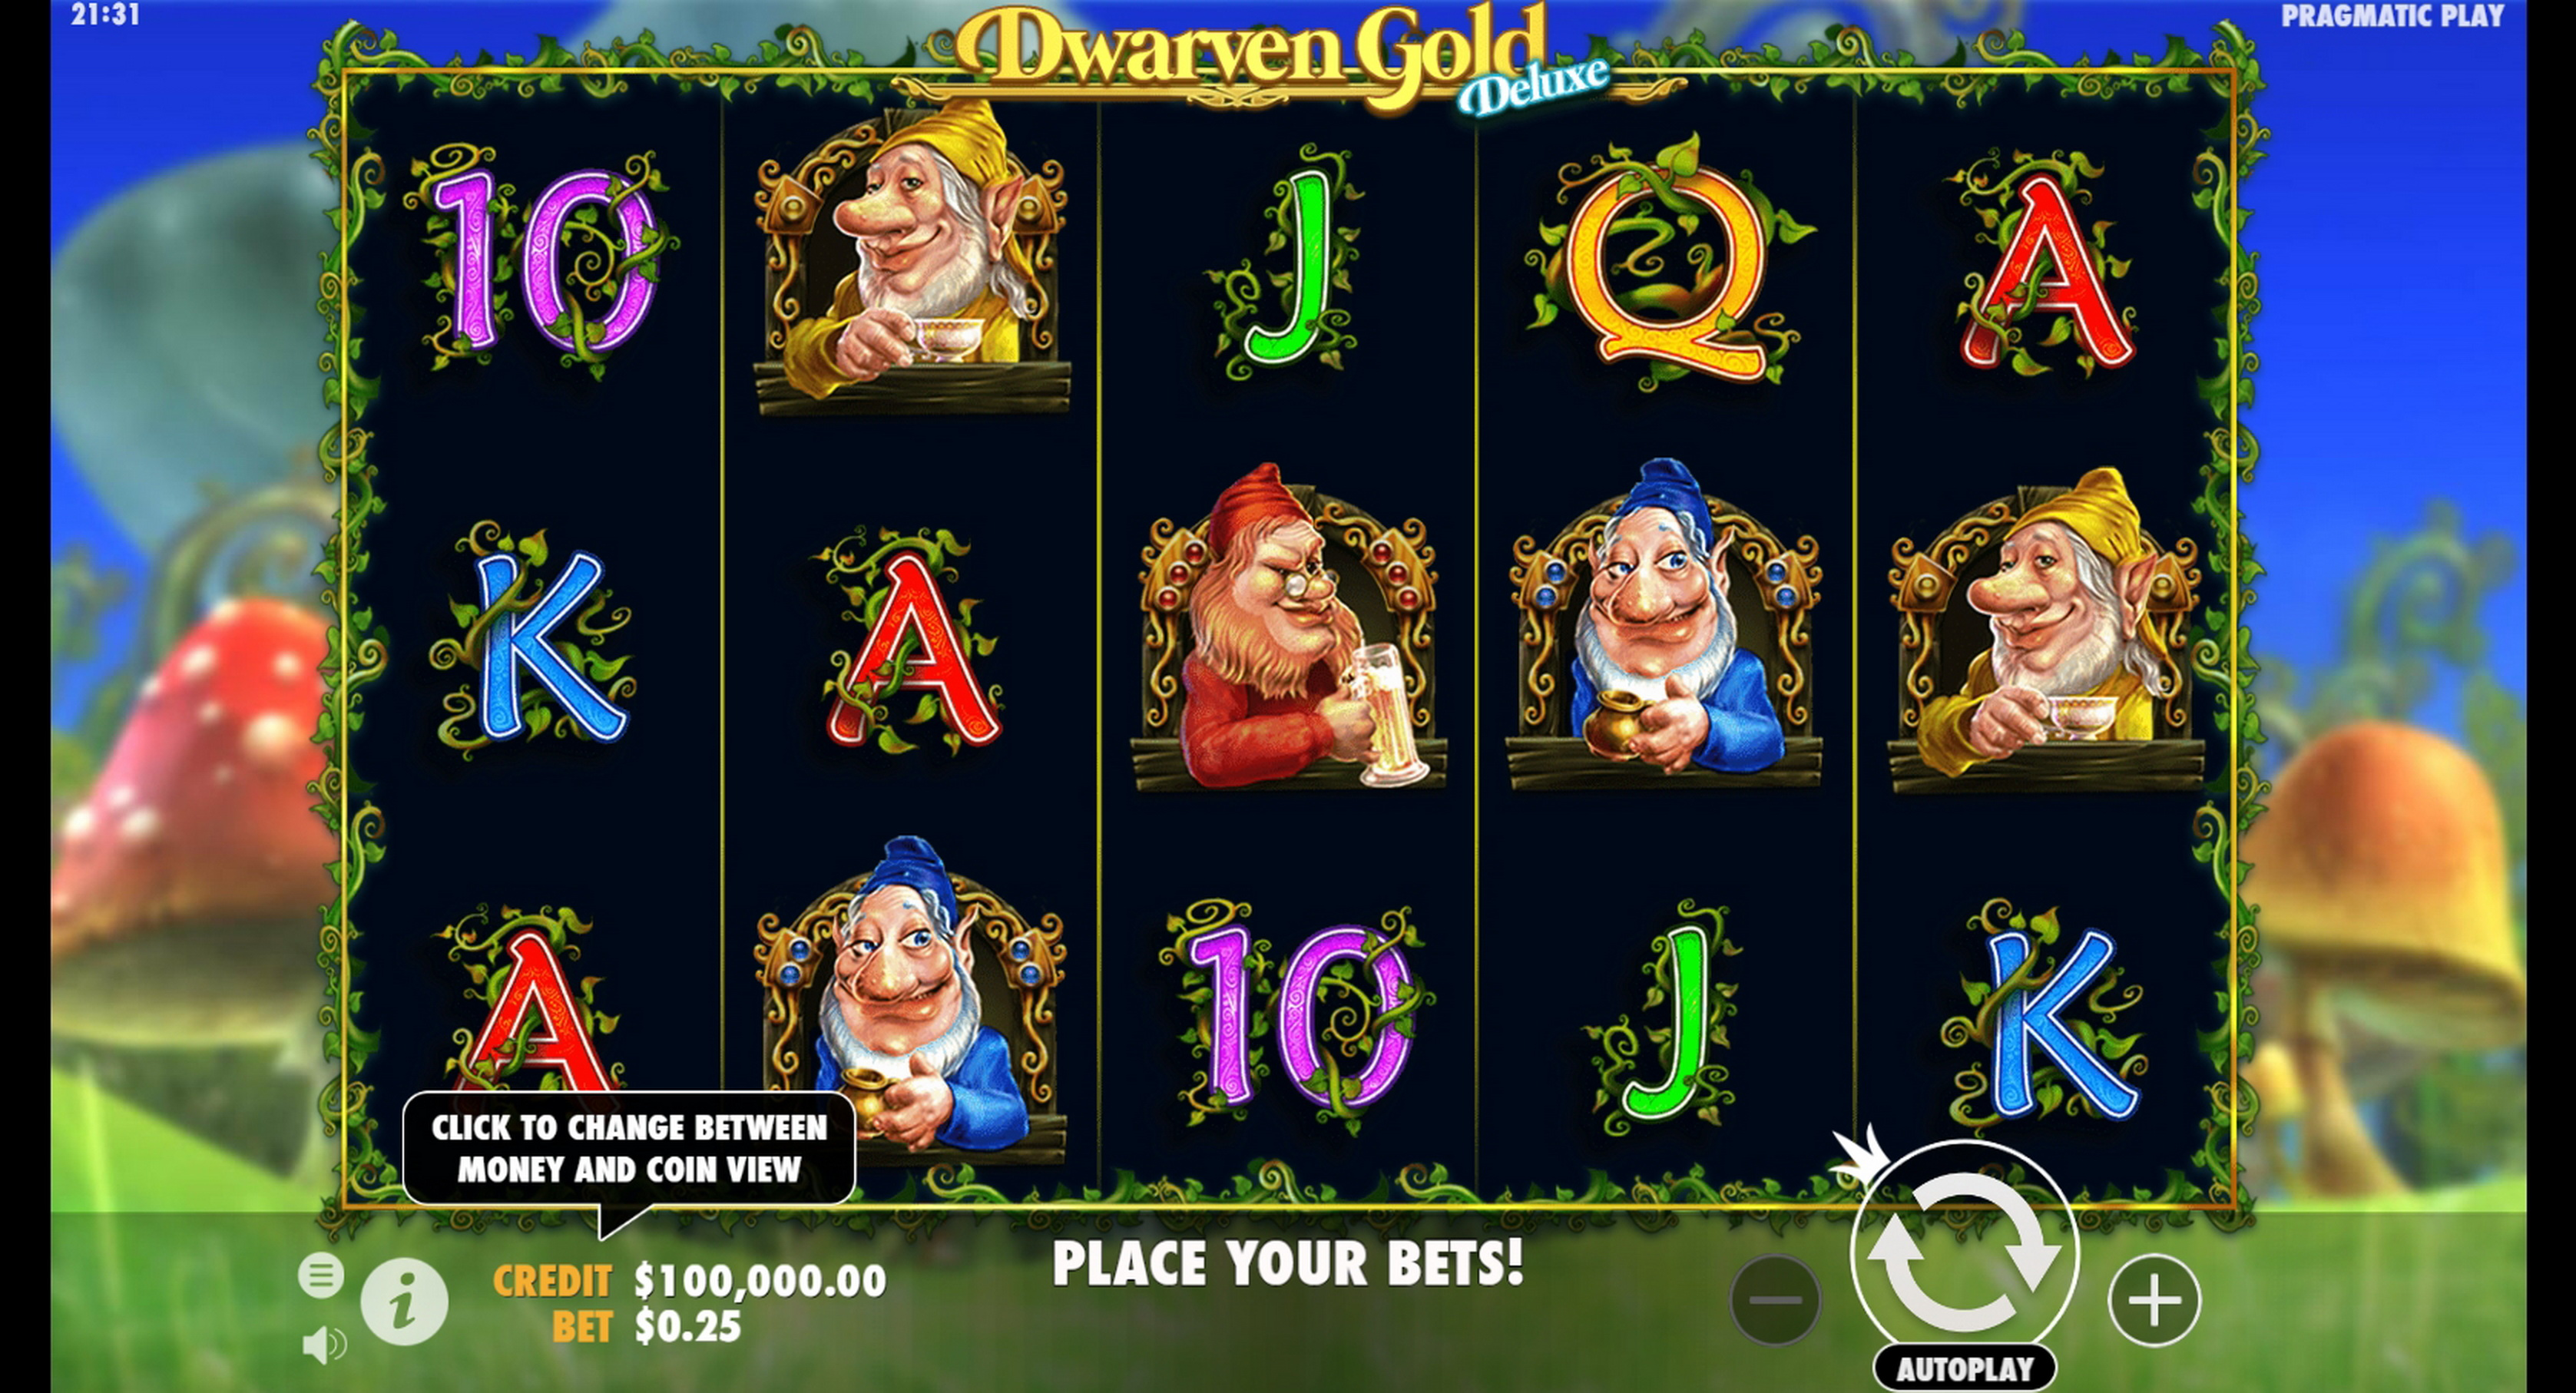 Reels in Dwarven Gold Deluxe Slot Game by Pragmatic Play